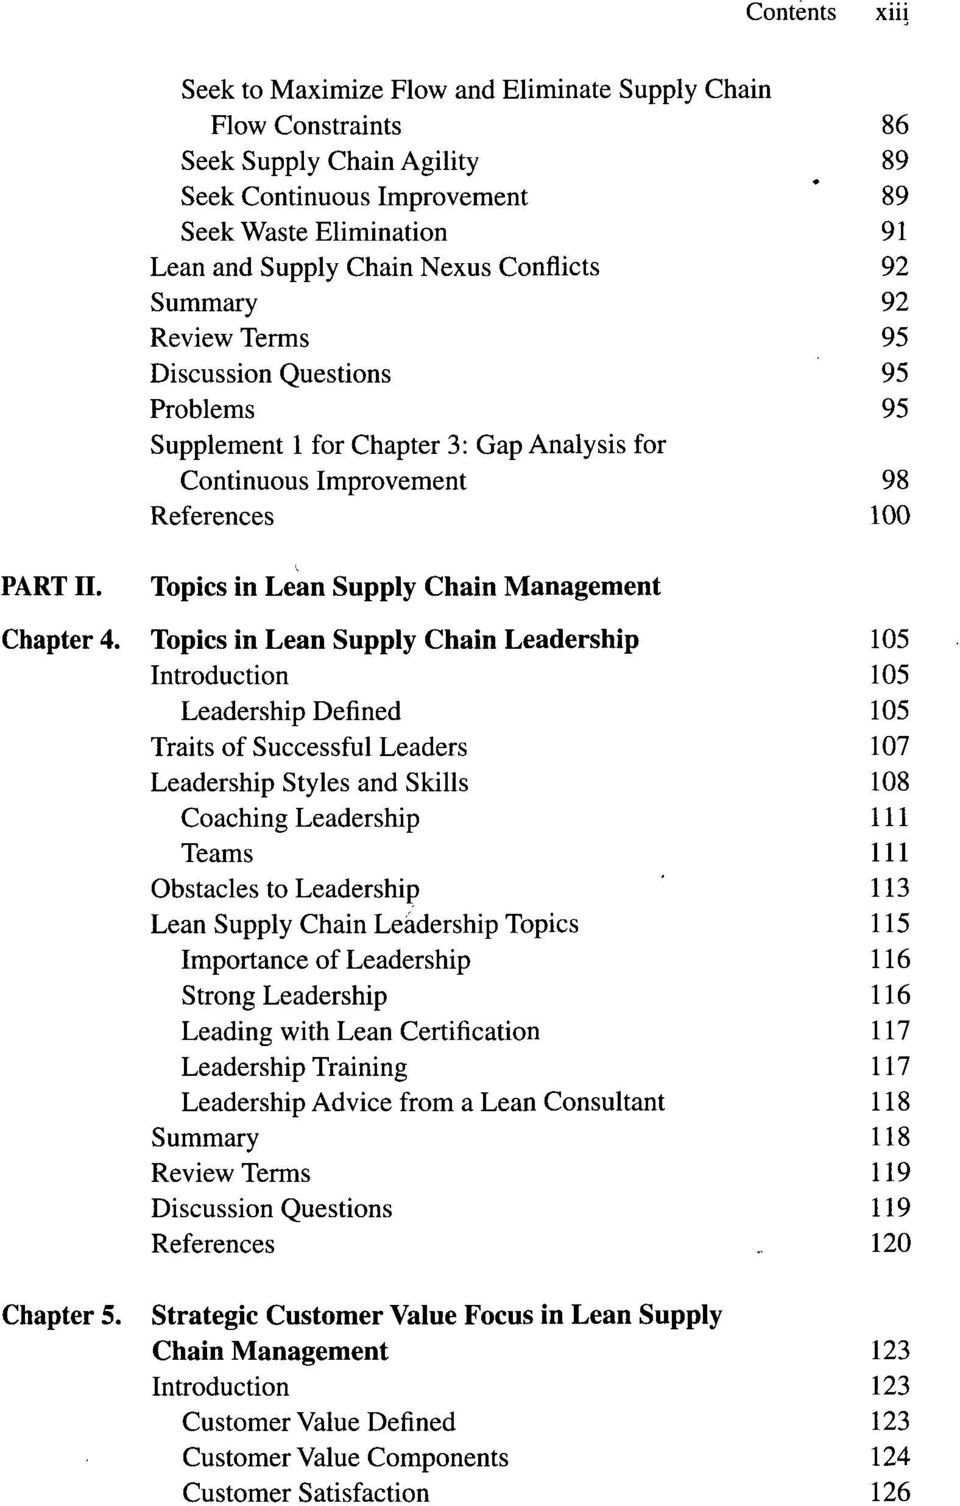 LEAN SUPPLY CHAIN MANAGEMENT TOPICS IN  Marc J